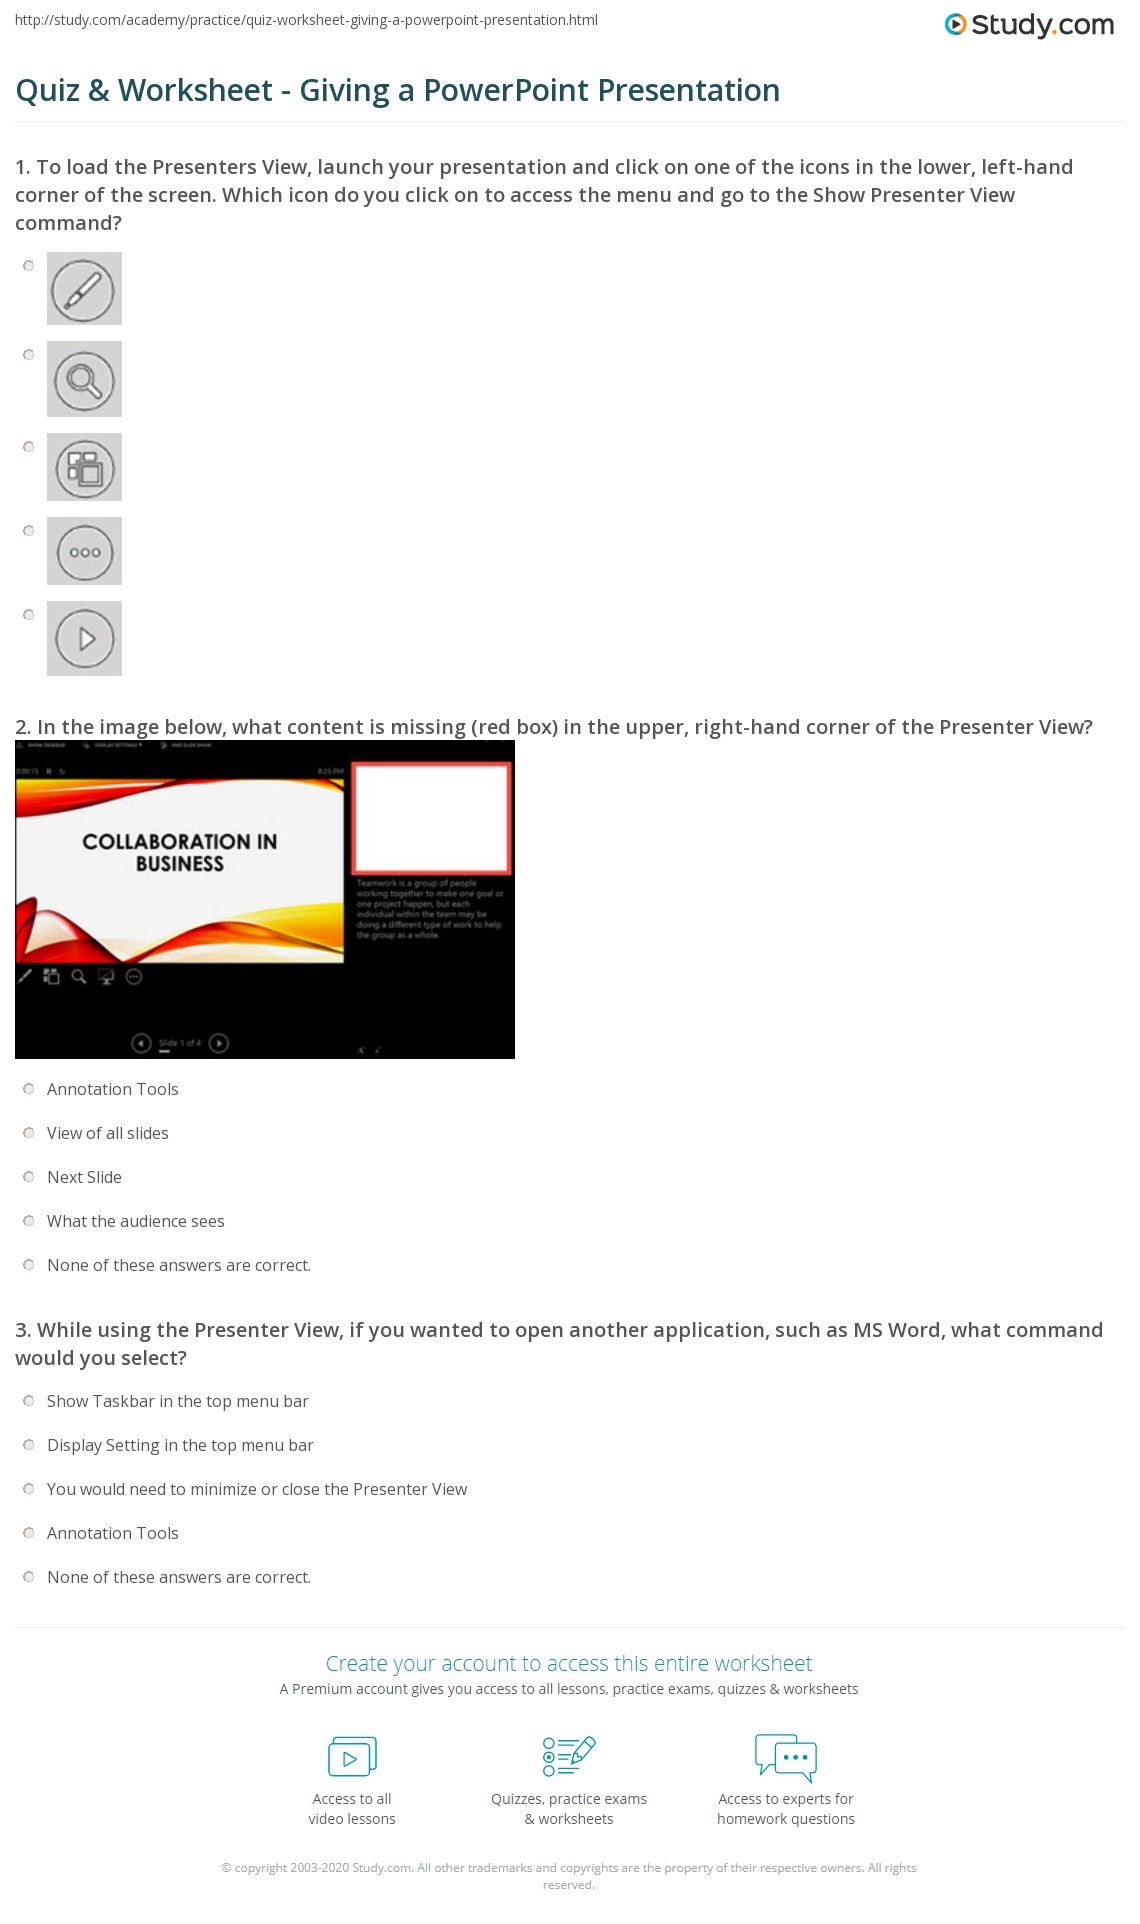 Quiz & Worksheet - Giving a PowerPoint Presentation | Study com